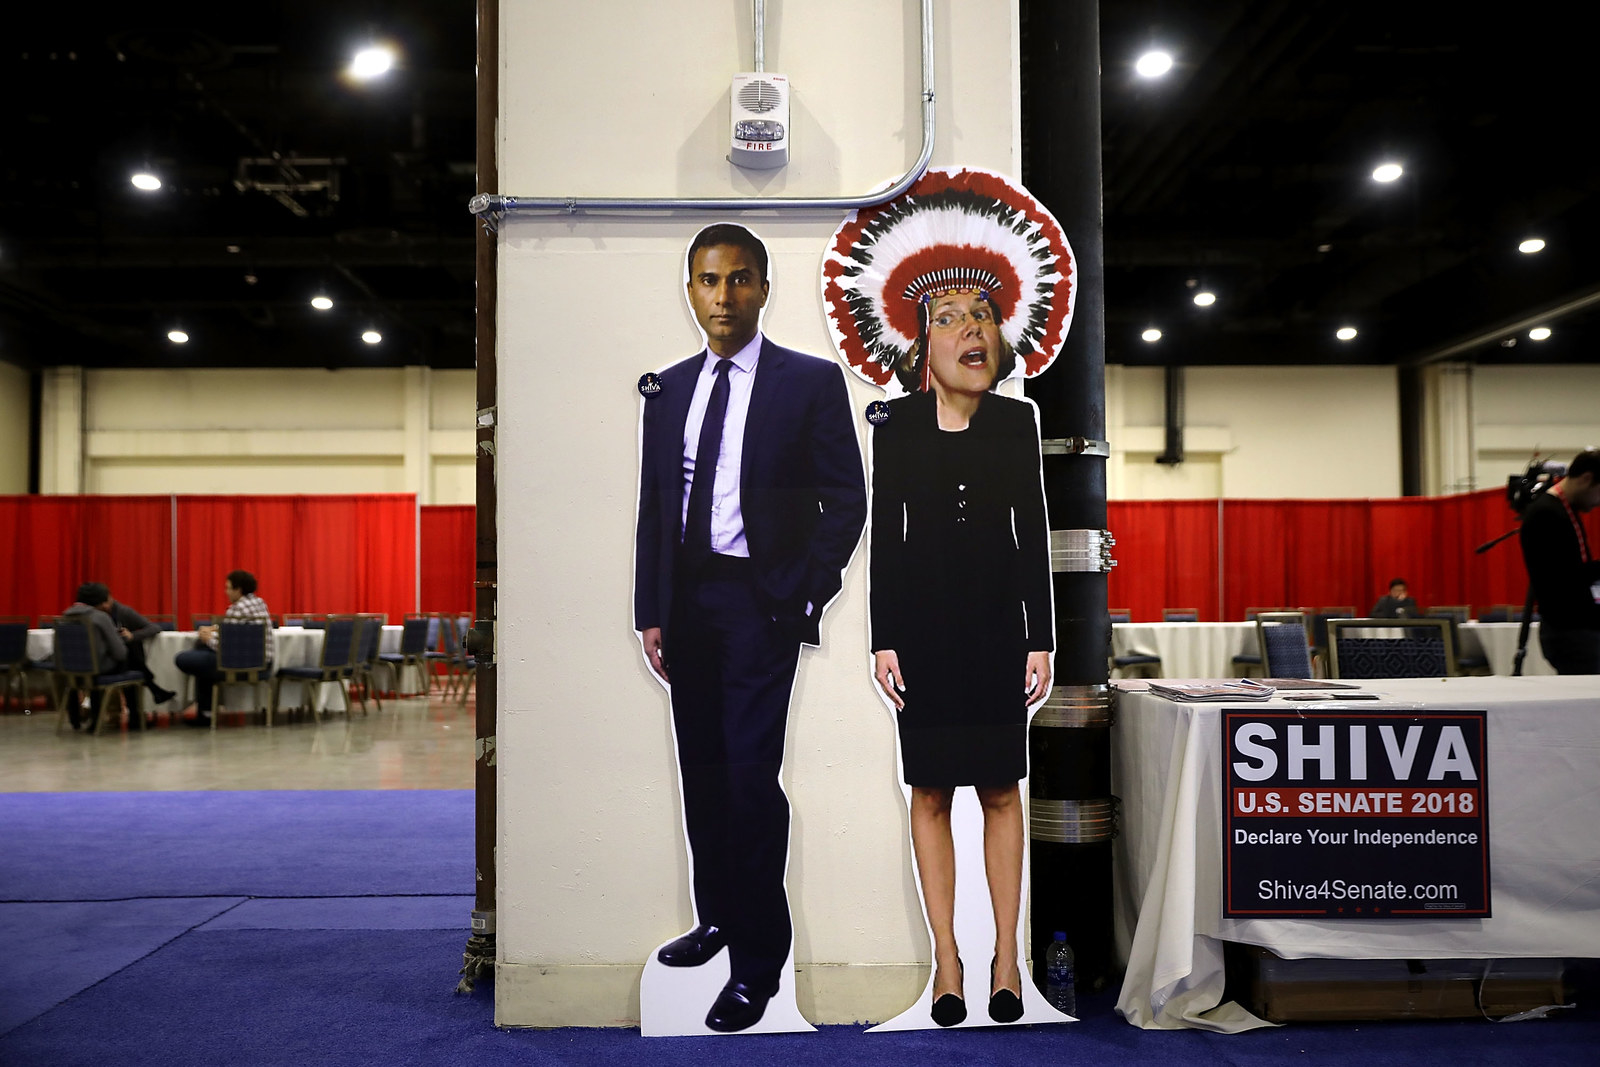 A booth in support of Shiva Ayyadurai, who is running against Sen. Elizabeth Warren, displays a photoshopped image of Warren wearing a Native American headdress inside the Conservative Political Action Conference Hub, Feb. 23, 2018 in National Harbor, Maryland.